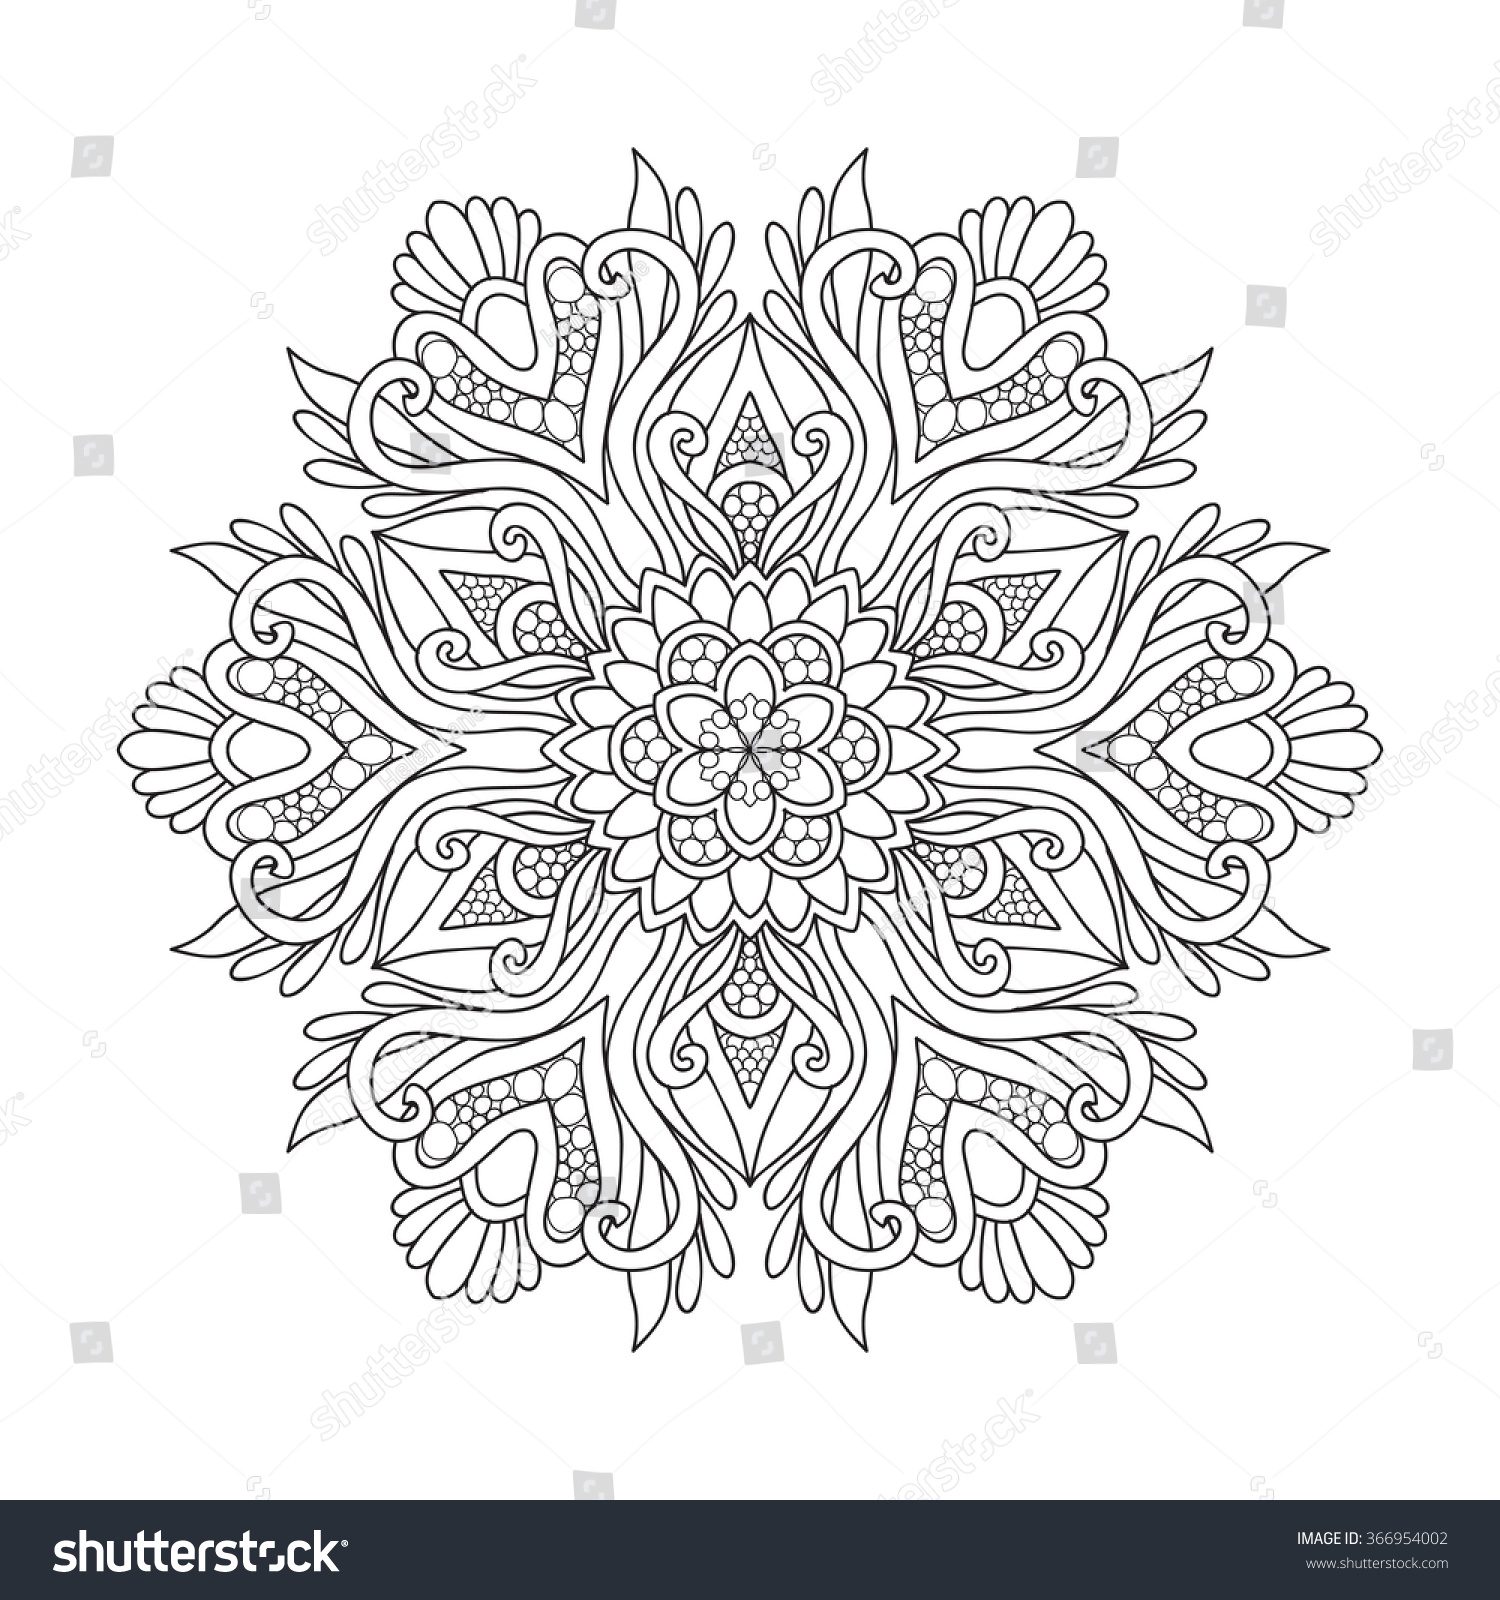 Decorative mandala vector illustration good coloring stock Good coloring books for adults